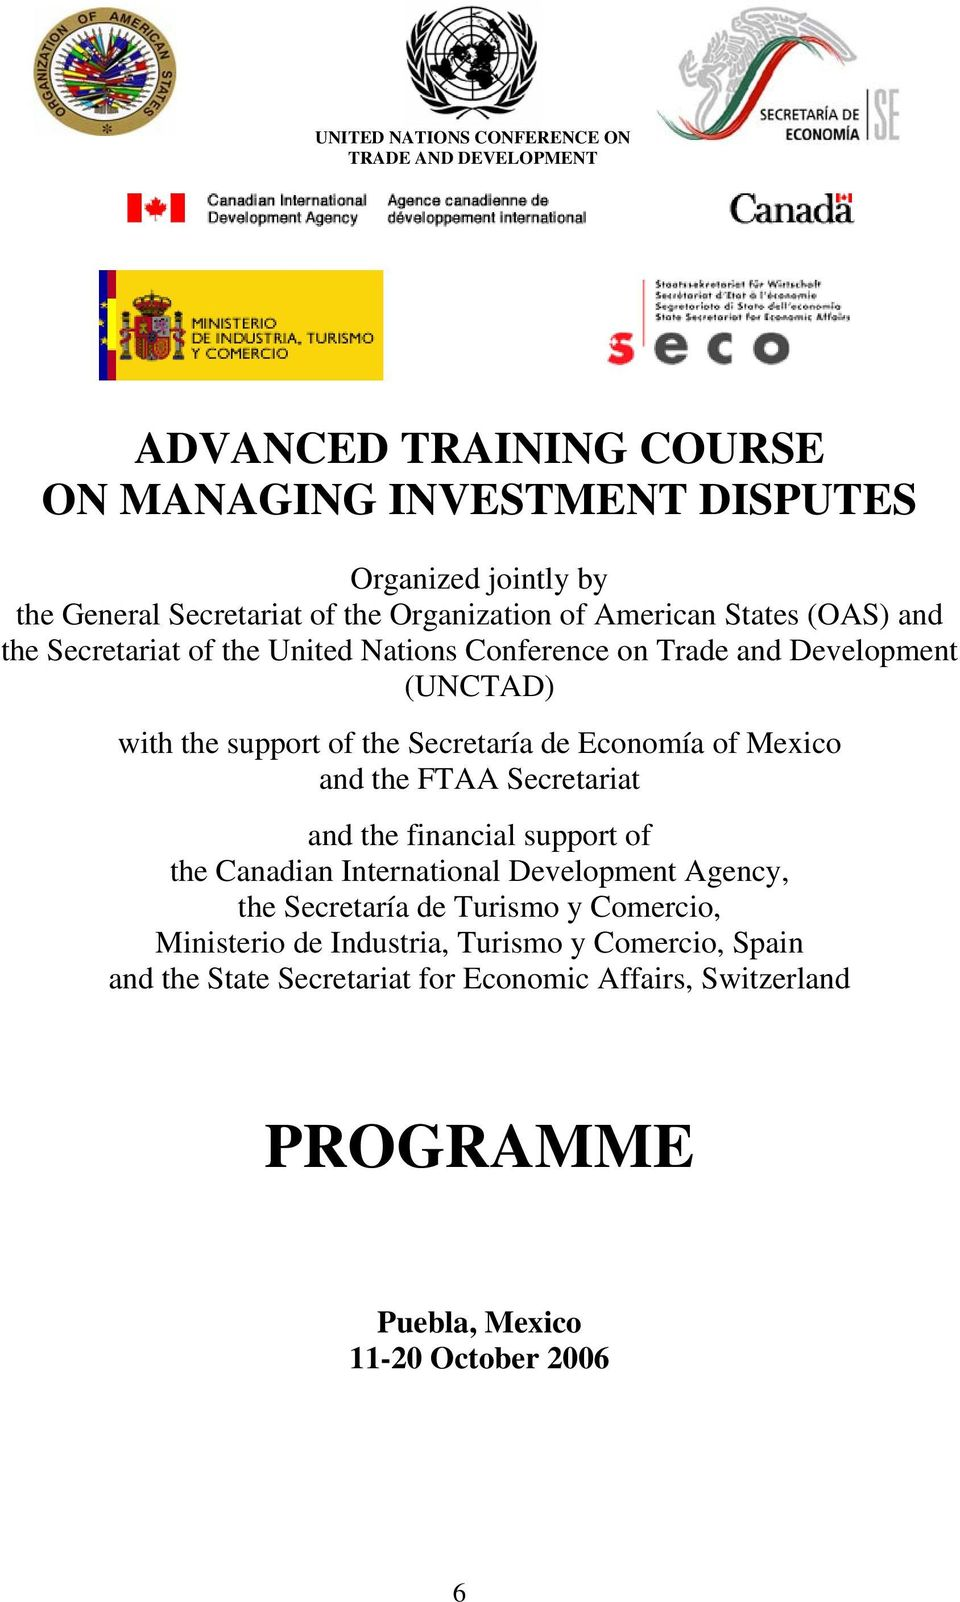 de Economía of Mexico and the FTAA Secretariat and the financial support of the Canadian International Development Agency, the Secretaría de Turismo y